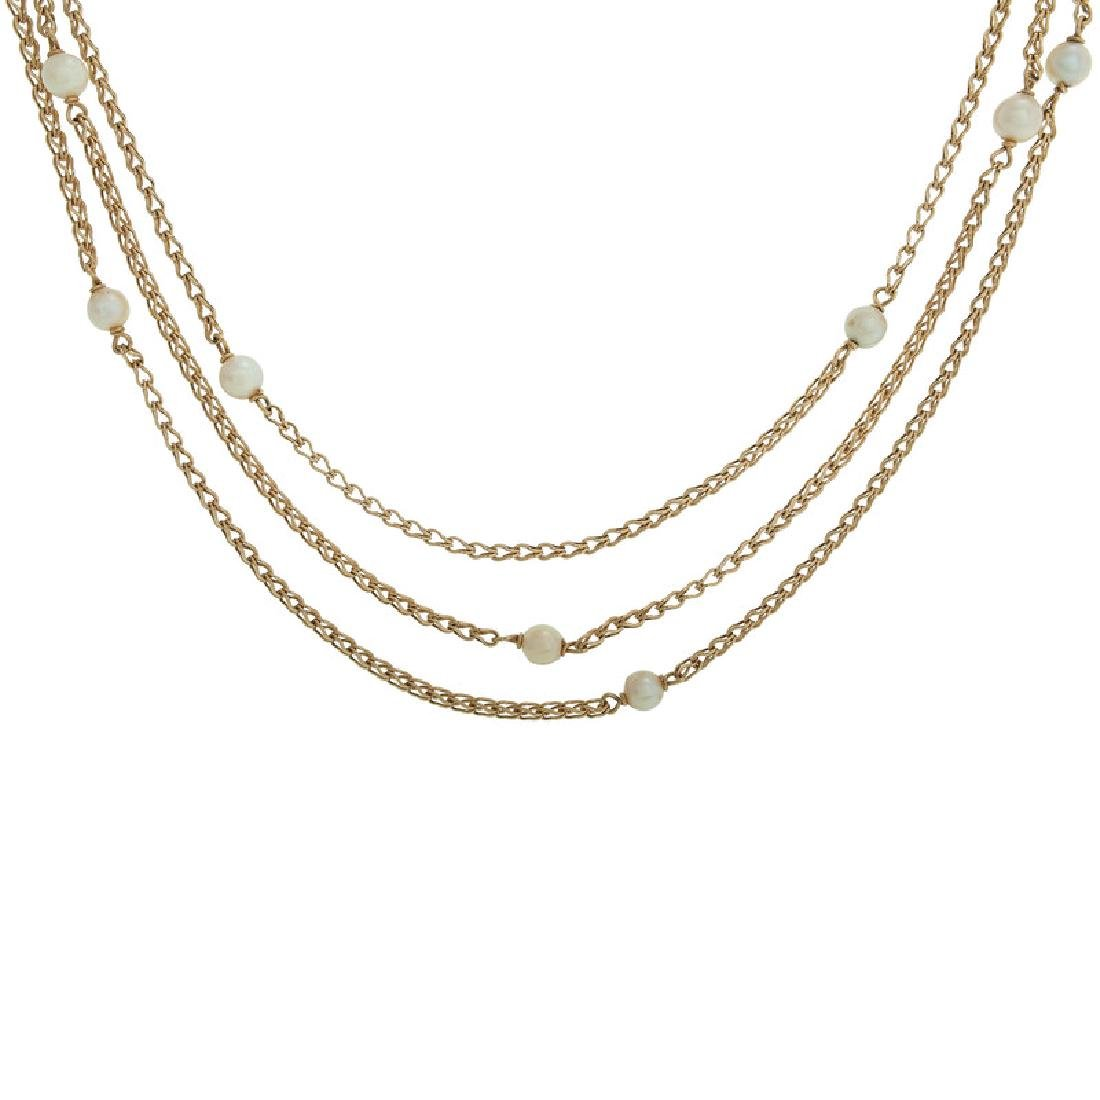 18 Karat Yellow Gold Cultured Pearl Station Necklace